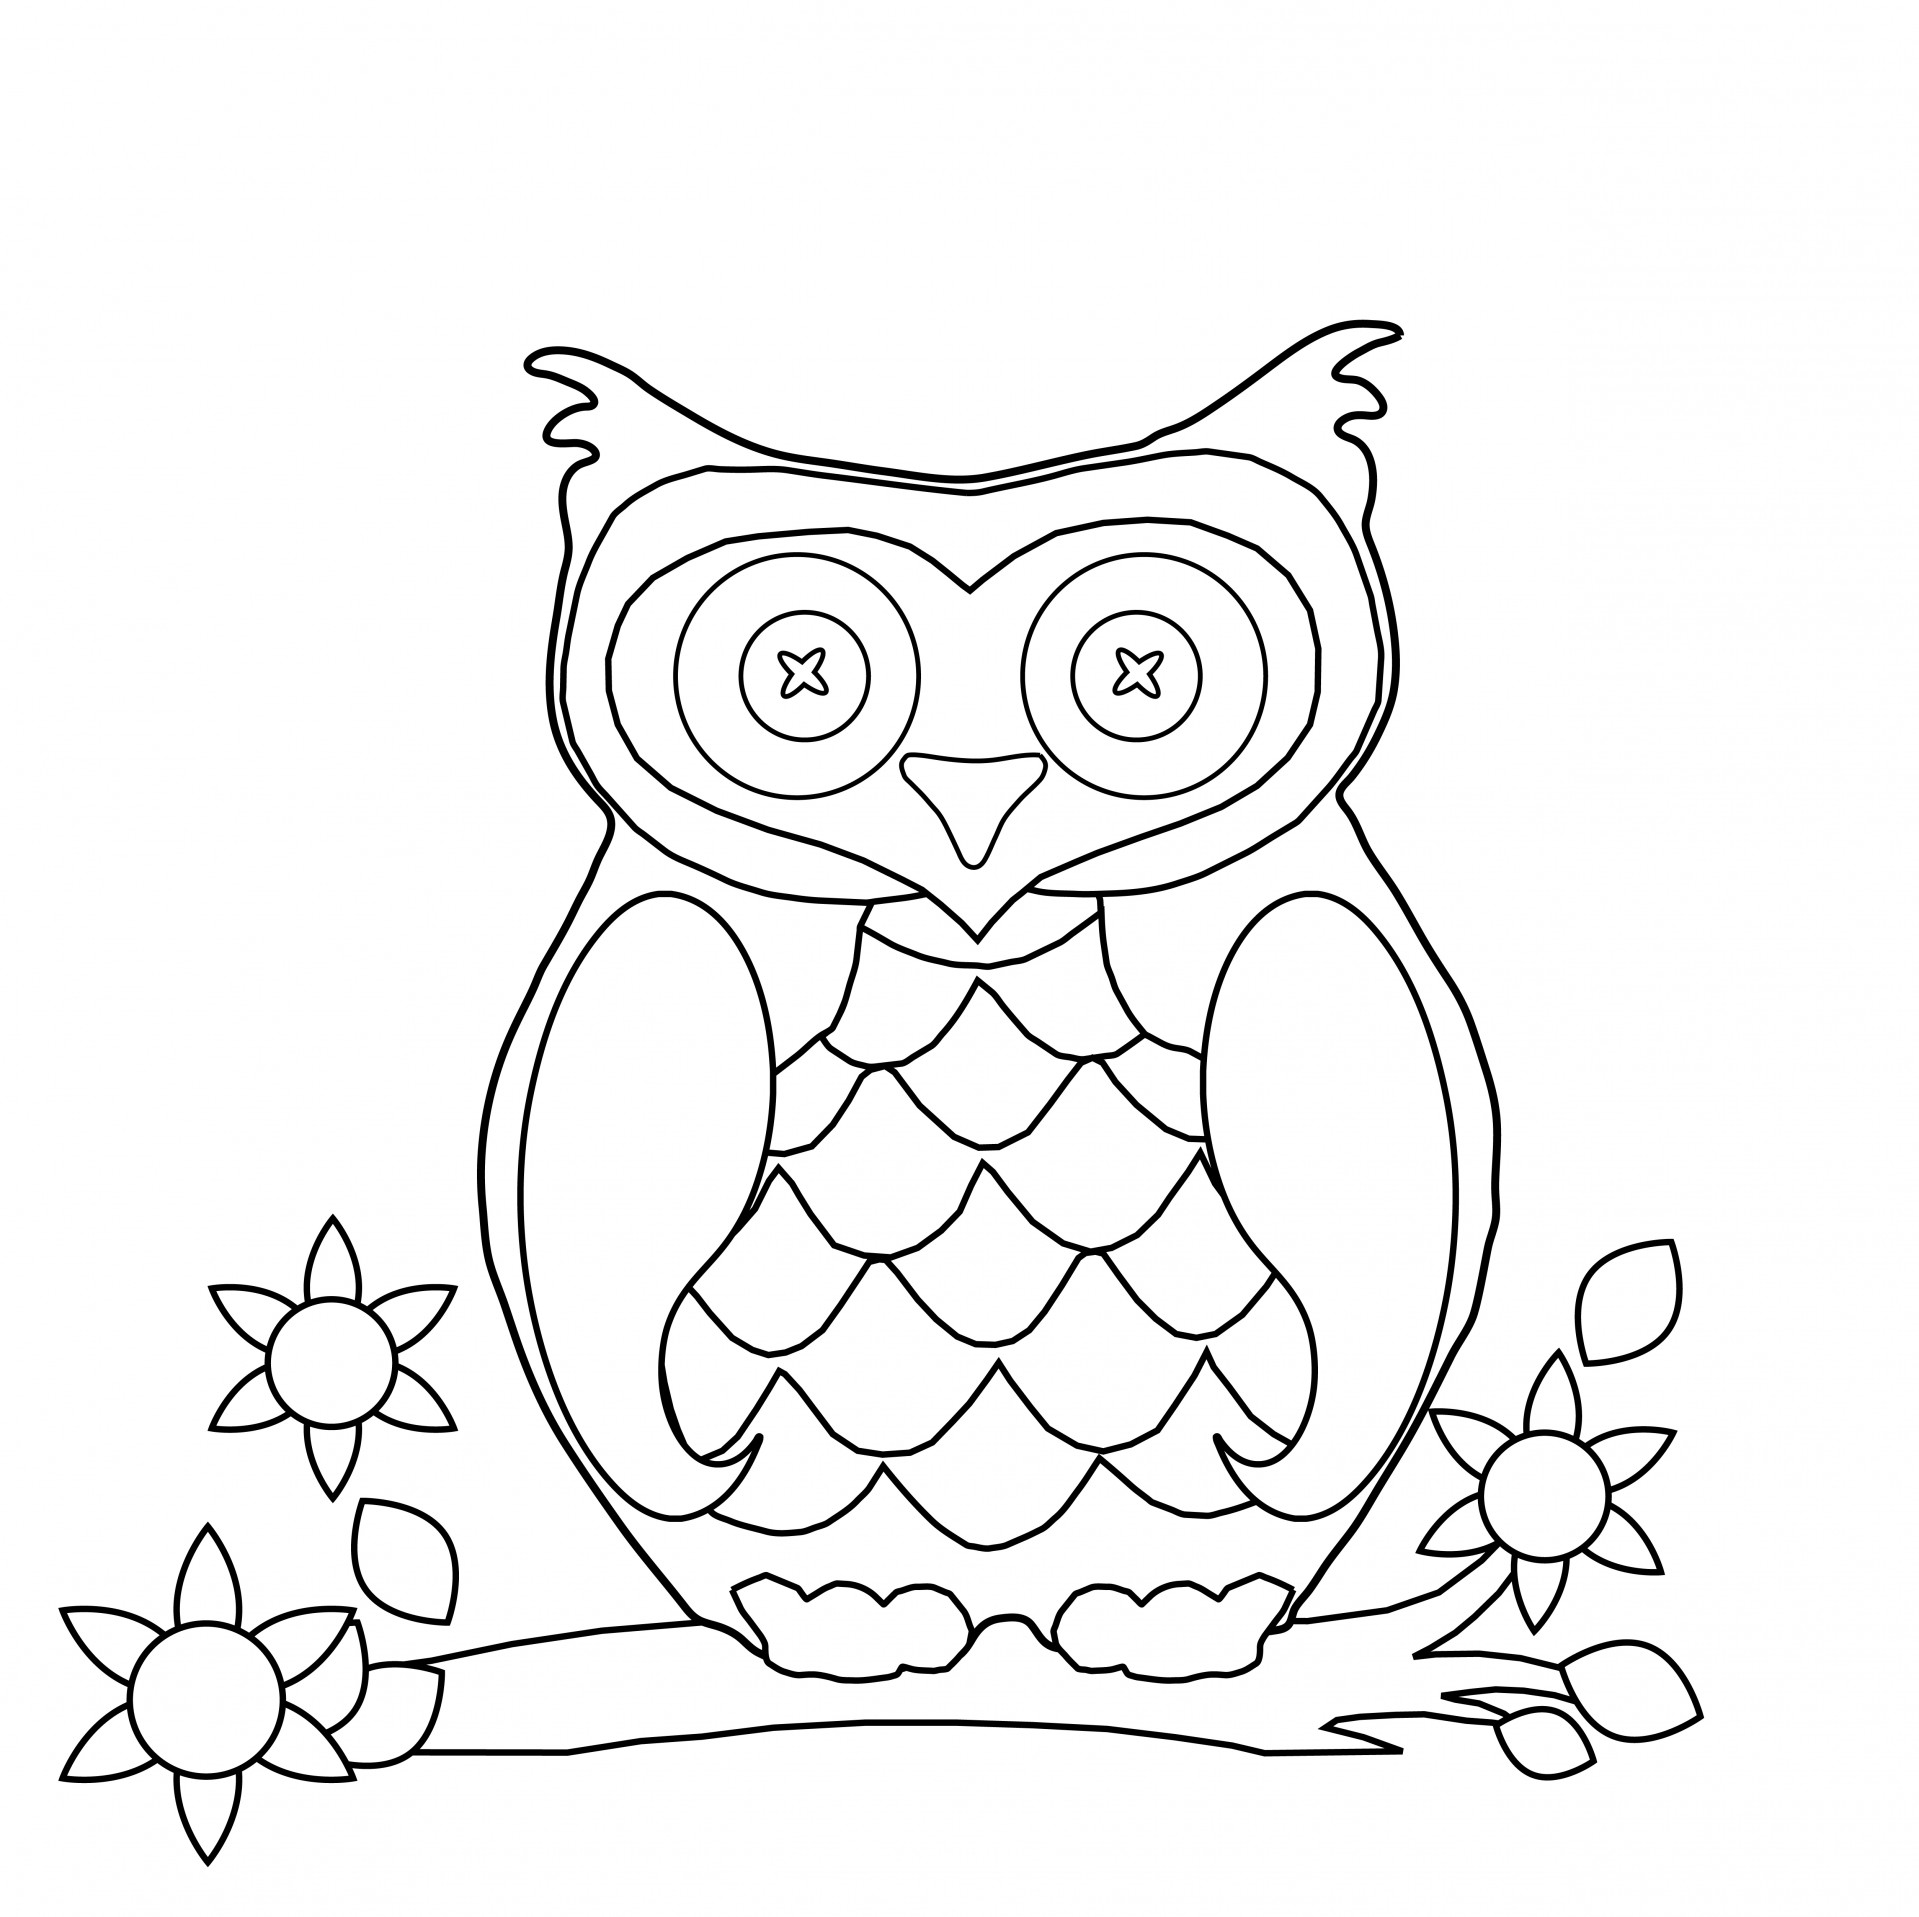 coloring pages for kids to print free printable nickelodeon coloring pages for kids print pages kids for to coloring